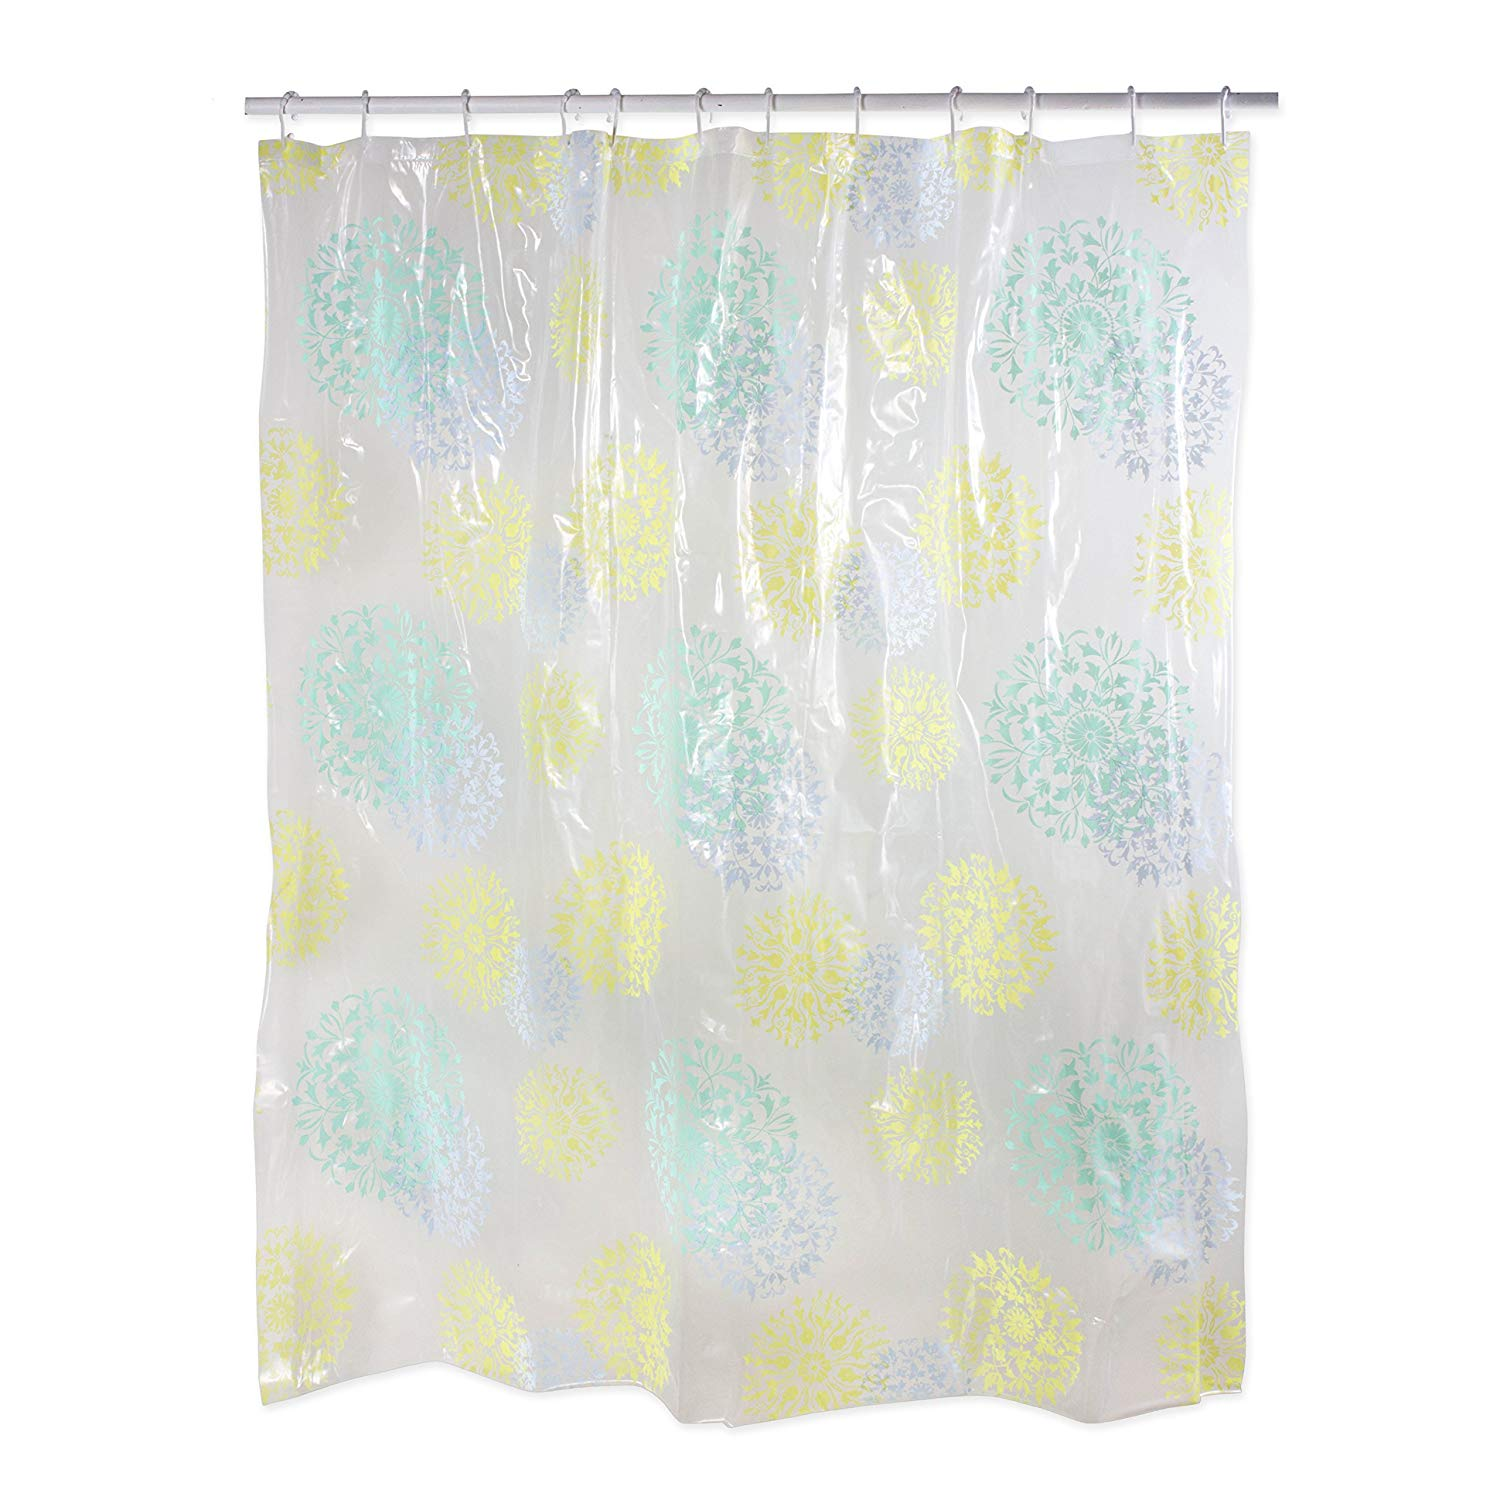 Get Quotations Polyester PEVA Shower Curtain 70x72 Antibacterial And Mildew Resistant Waterproof Water